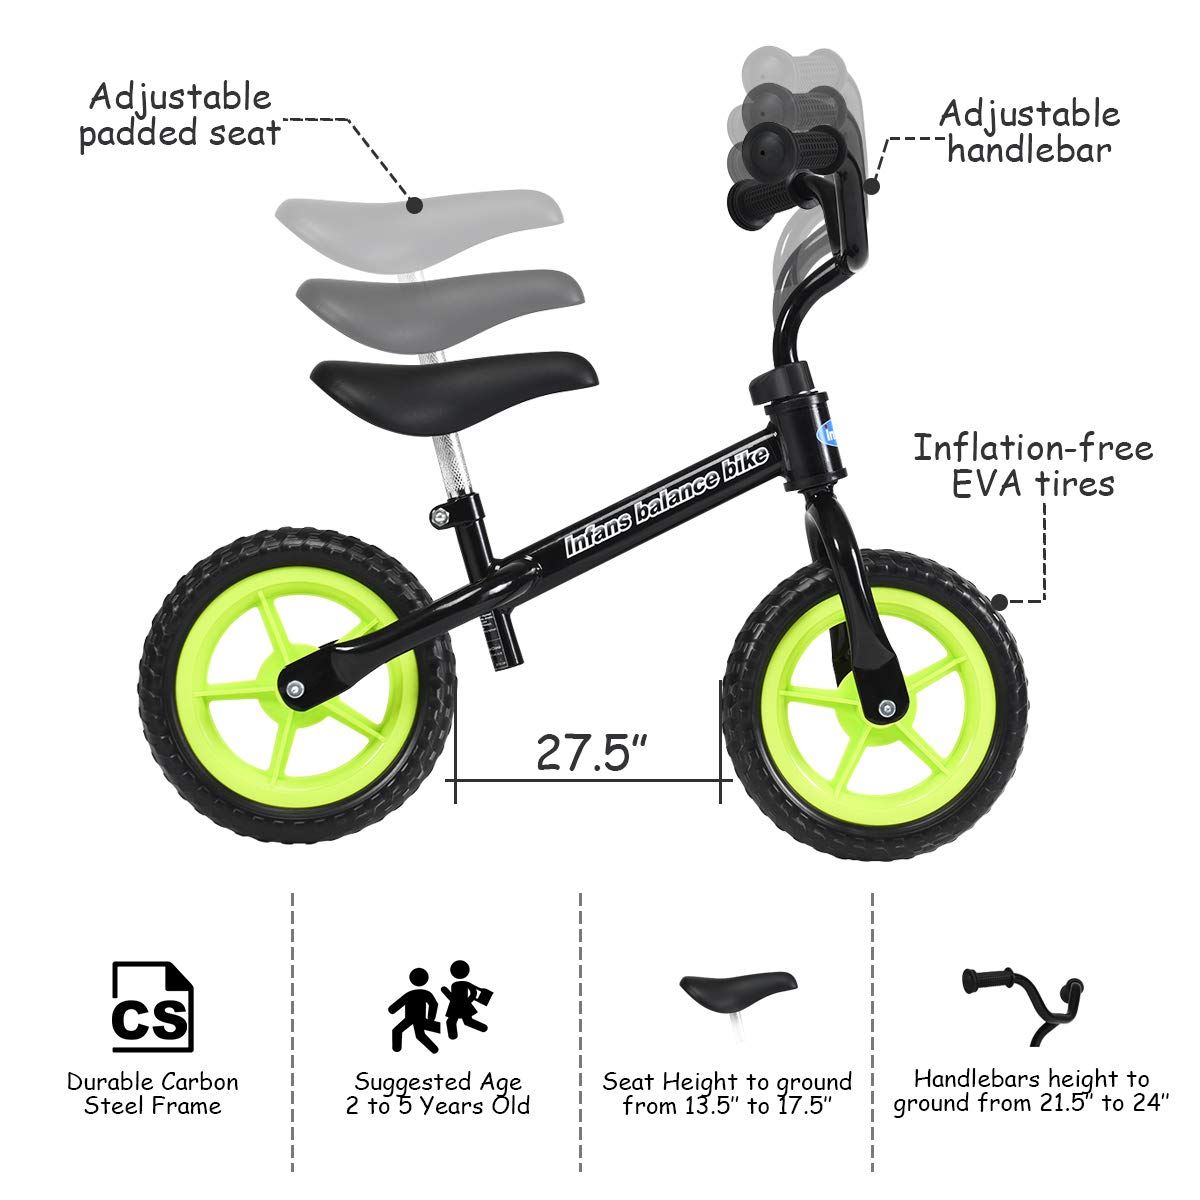 Incredible Infans Lightweight Balance Bike Kids Training Bicycle With Height Adjustable Seat Handlebar Inflation Free Eva Tires No Pedal Pre Walking Bike Squirreltailoven Fun Painted Chair Ideas Images Squirreltailovenorg